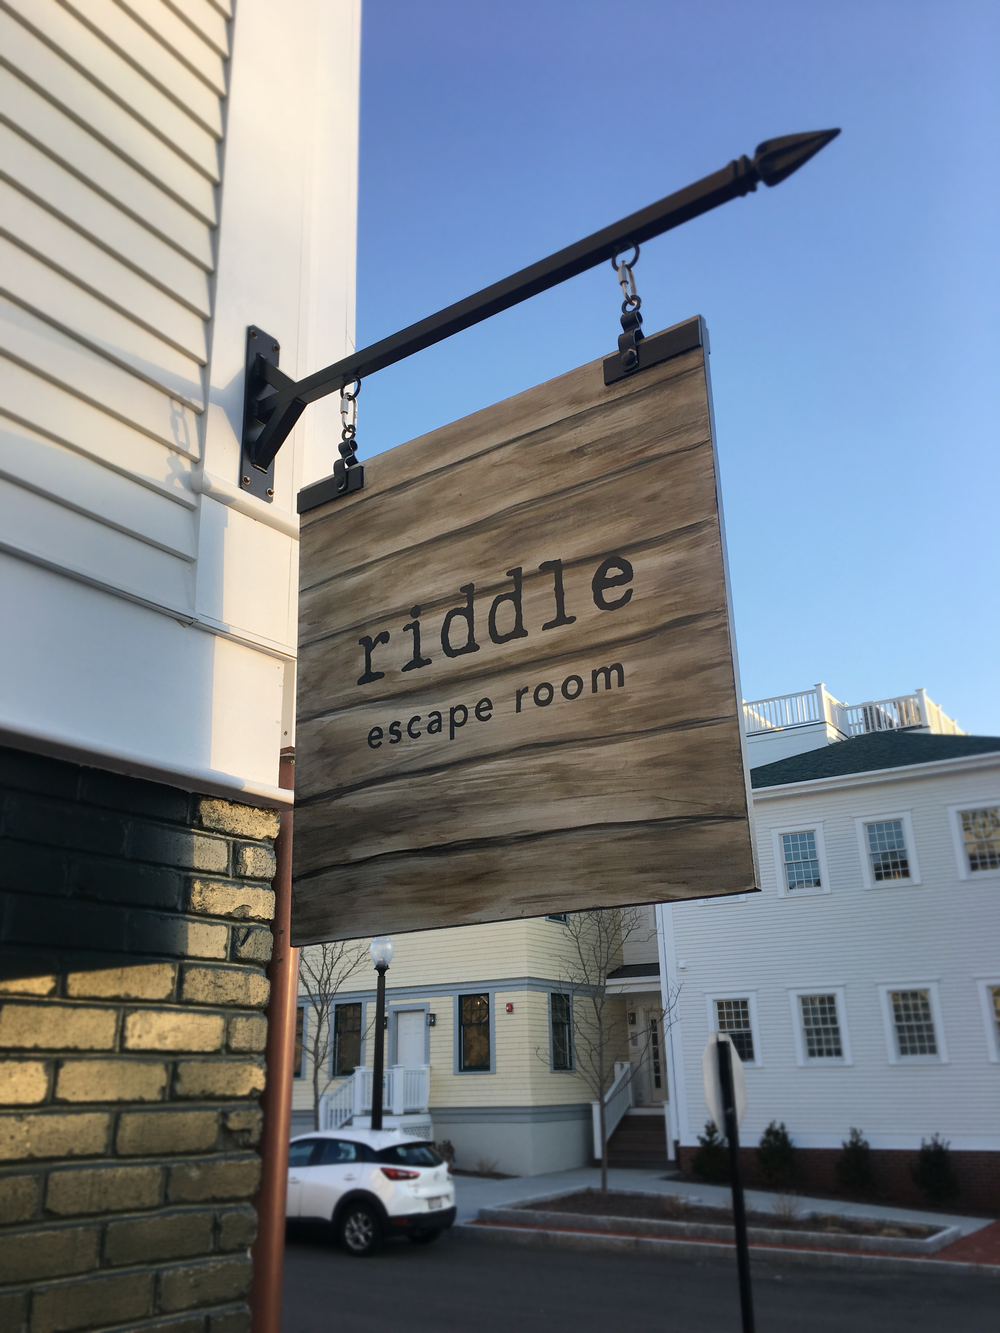 riddle cape cod - Exterior Projection SignageIf something works, why change it? Well, that's just the case for Nicole and Ashley, owners of Cape Cod's first ever escape room, Riddle.Nicole and Ashley have been long-time clients of mine with their other venture,Hot Diggity. When they got the bee in their bonnet for this new business, they immediately reached out to me to brand this new adventure of theirs too! From logo and print marketing, all the way to their exterior signage, we've got Riddle Cape Cod, covered.CONSTRUCTIONThis sign is 32x32 and hung on hardware designed for commercial application, while esthetically fitting in with the dark, yet modern branding we've developed for Riddle.The base is marine grade Okoume wood that has been prepped and sealed for multi-layered painting application. All paint is exterior grade, combined with sign-painters enamel for long-lasting durability. The sign was finished and sealed with multiple layers of marine-grade satin-finish SPAR varnish.